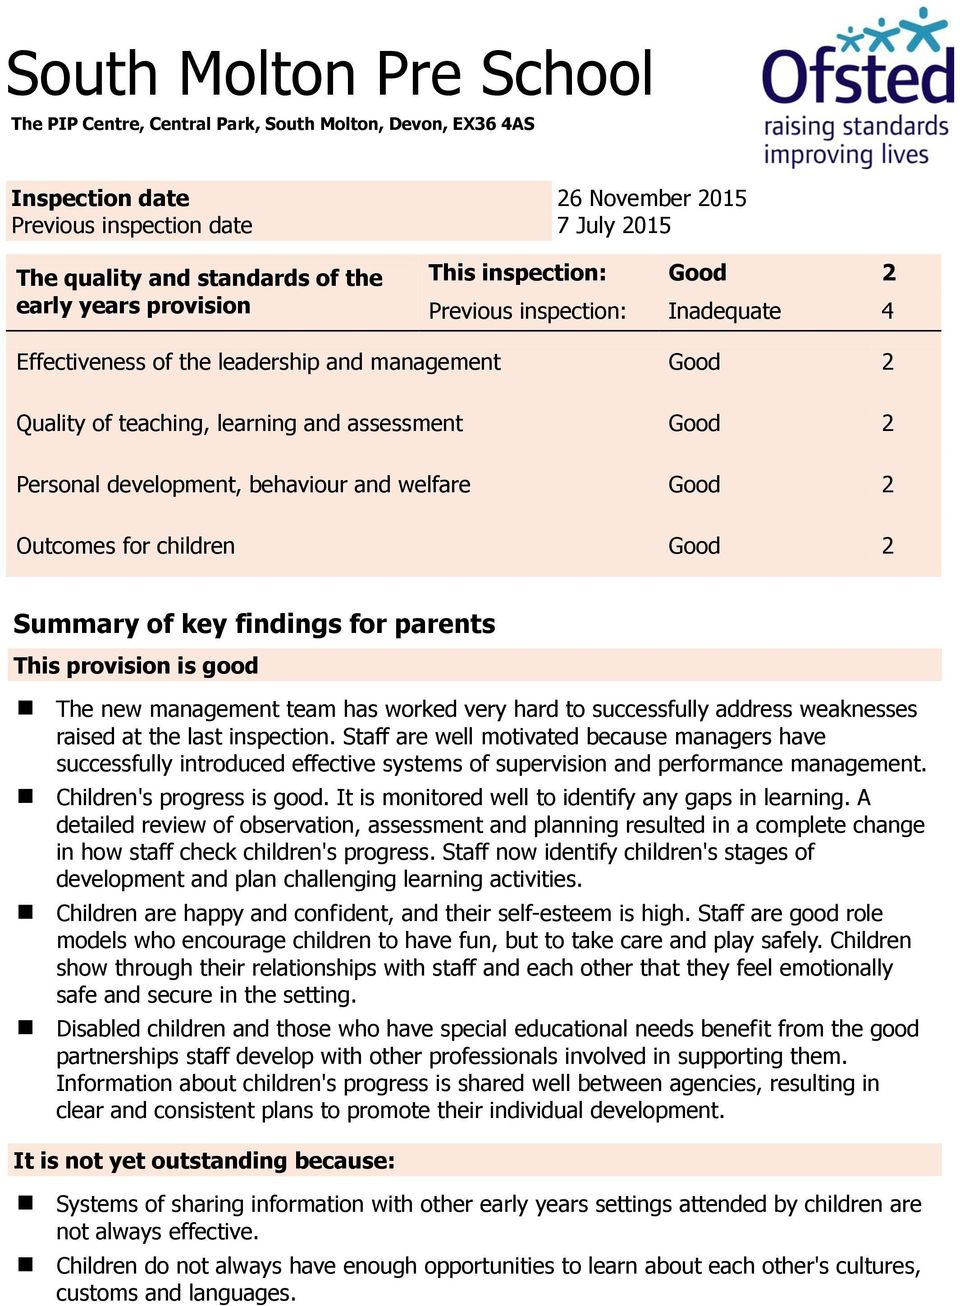 behaviour and welfare Good 2 Outcomes for children Good 2 Summary of key findings for parents This provision is good The new management team has worked very hard to successfully address weaknesses